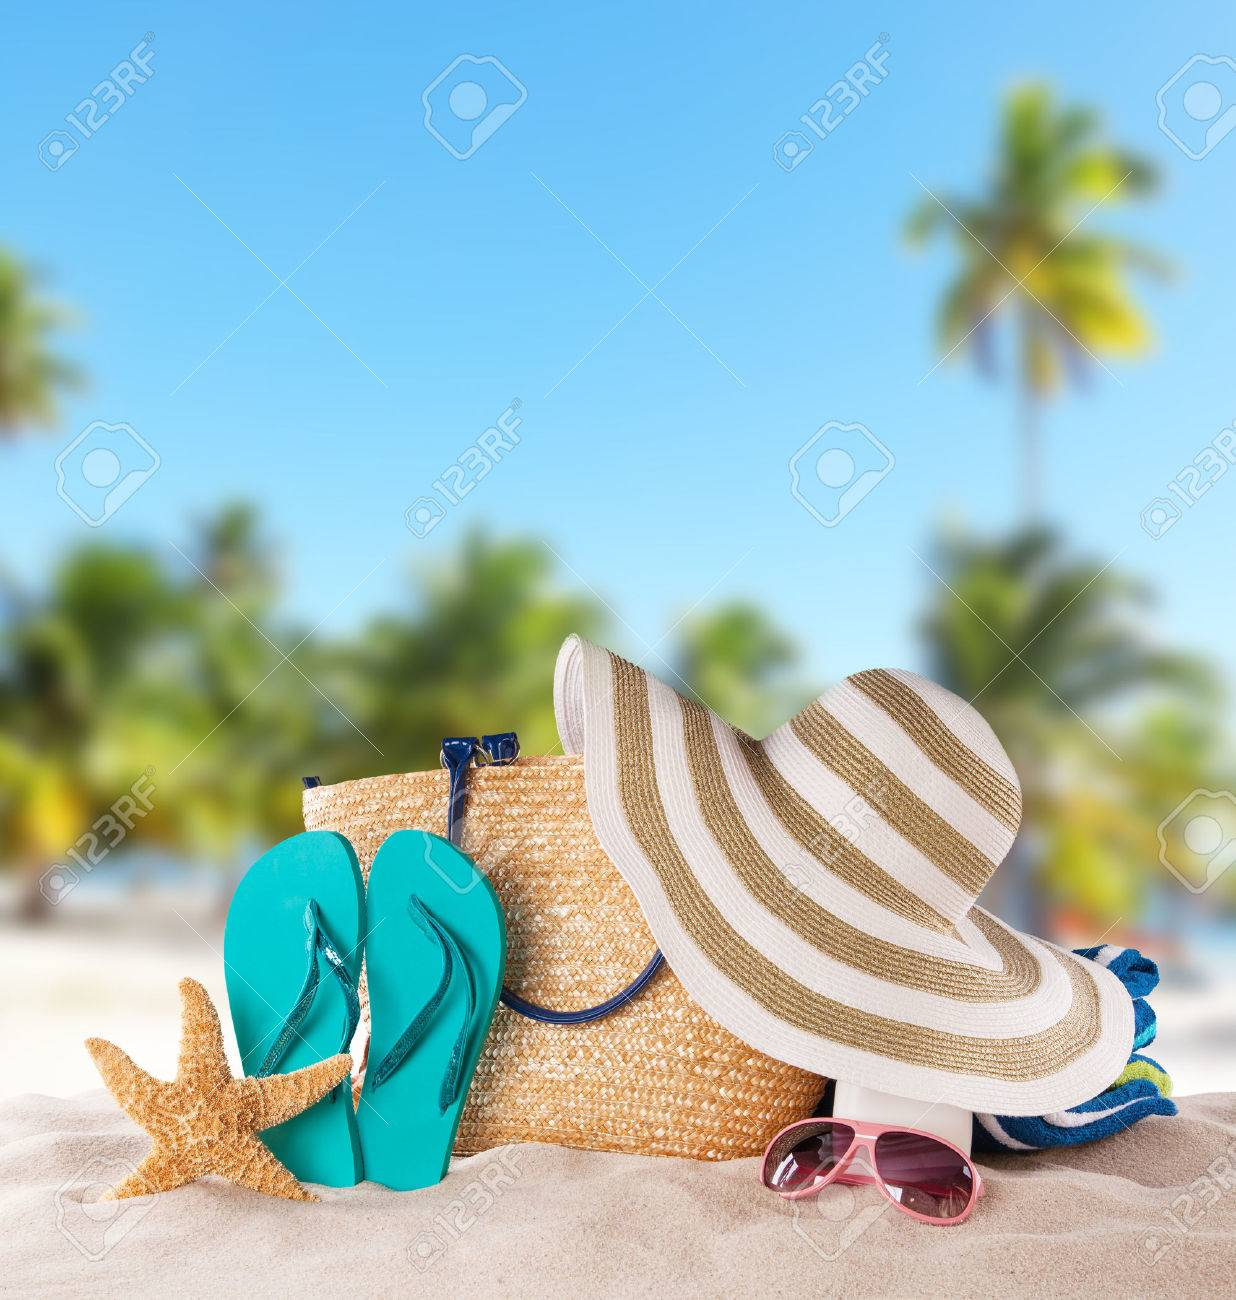 Sandals shoes holidays - Straw Sandals Summer Concept With Accessories On Sandy Beach